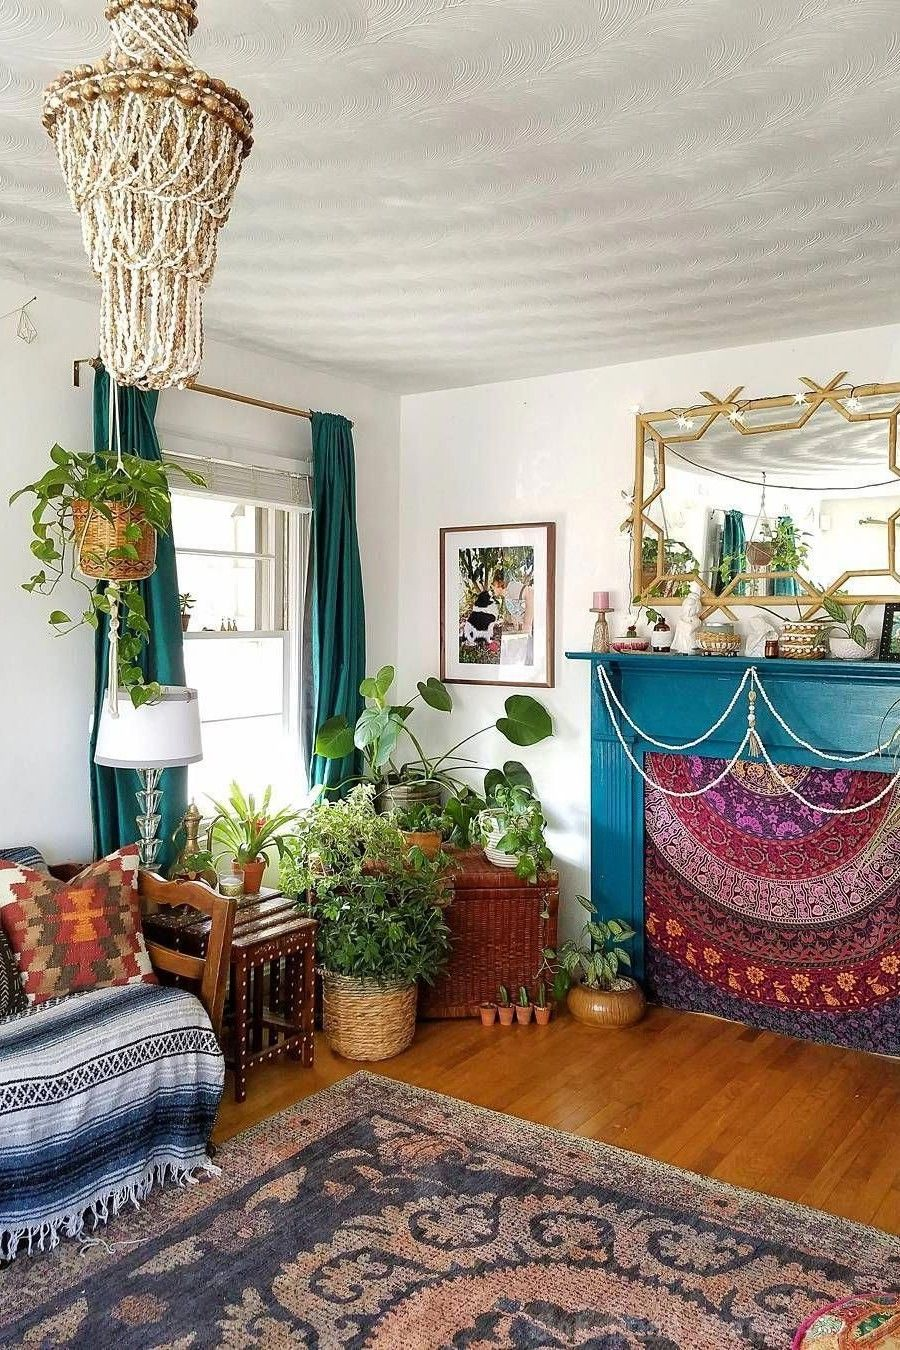 More on Bohemian Home Decor